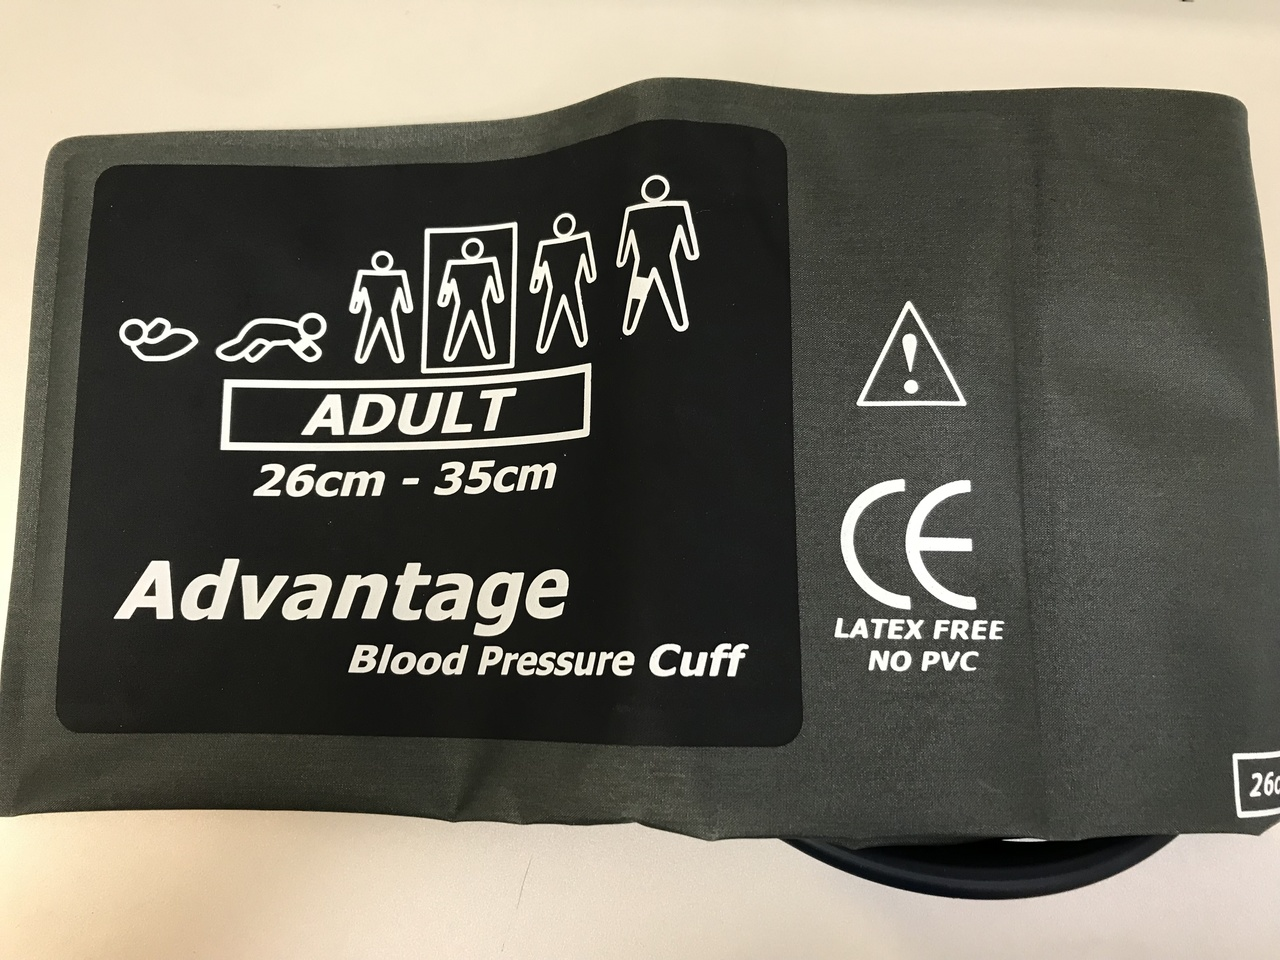 Advantage Blood Pressure Cuff (Adult 26-35 cm)